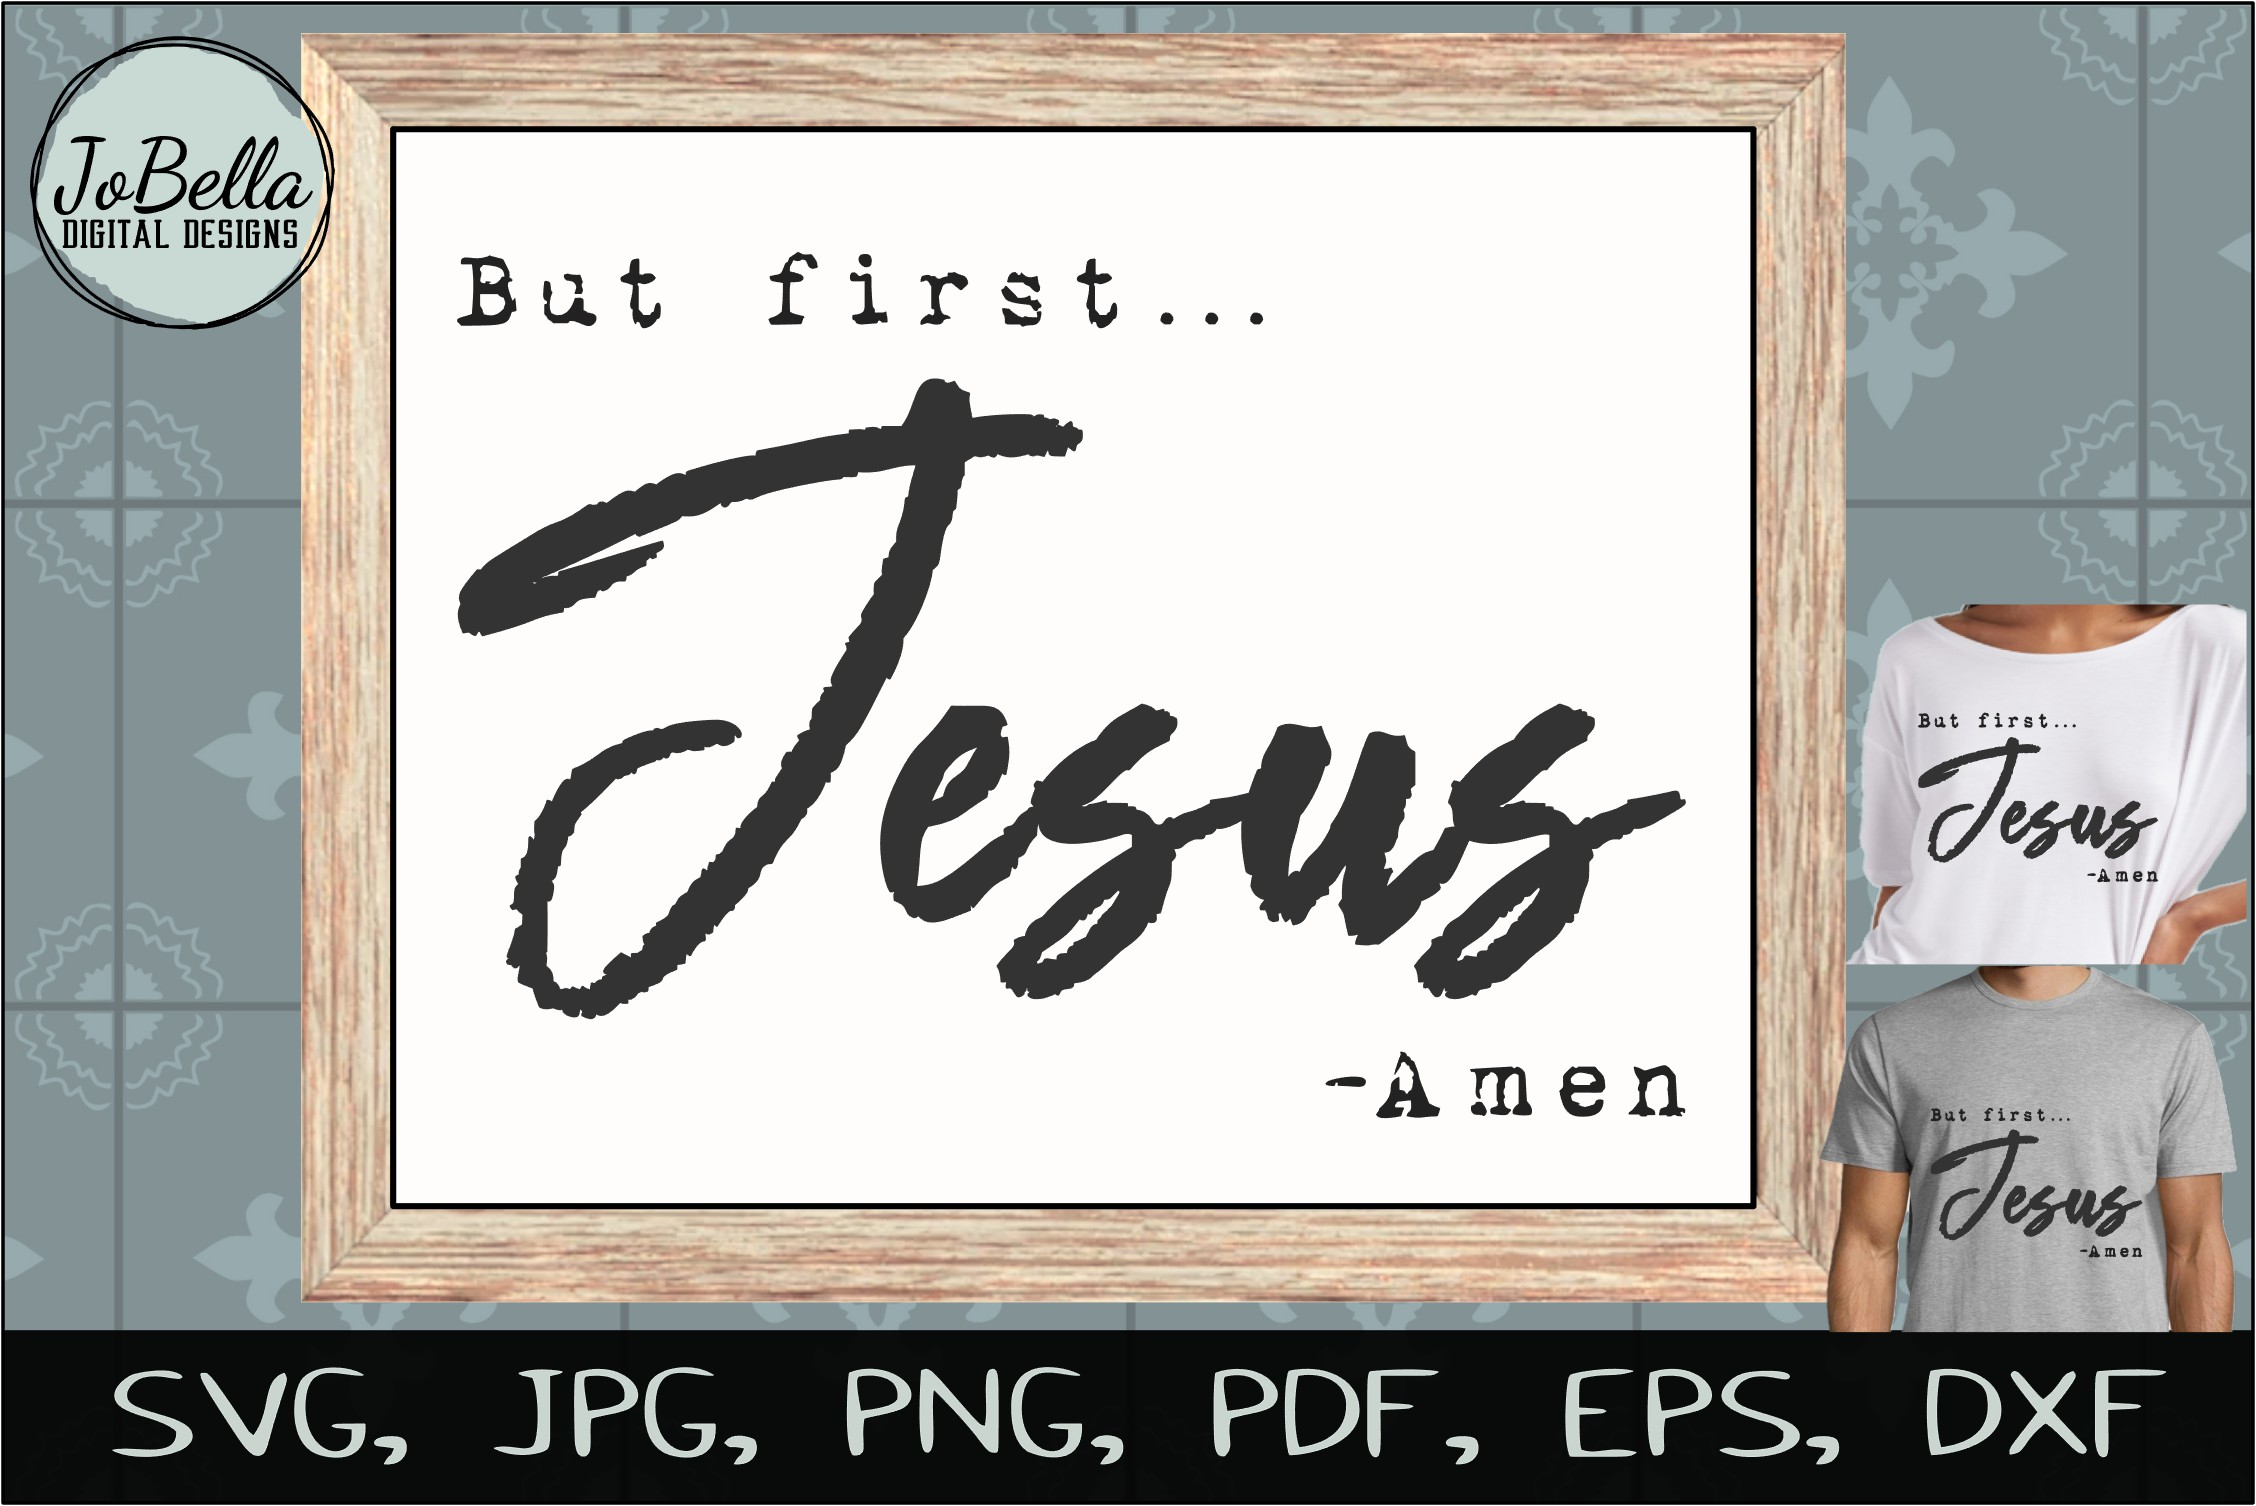 Download Free But First Jesus And Sublimation Graphic By Jobella Digital for Cricut Explore, Silhouette and other cutting machines.